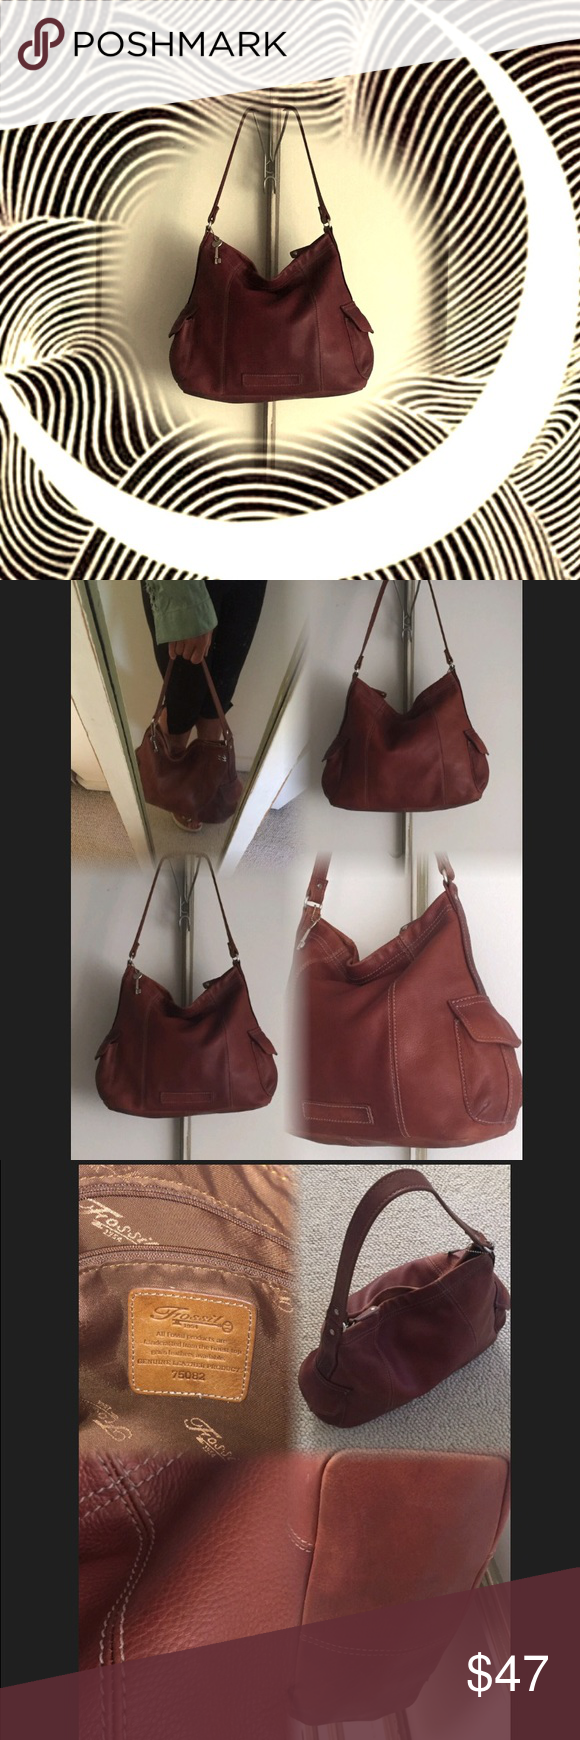 """Fossil Pebbled Leather Bag From the """"Fossil 1954"""" Collection of vintage like soft oiled leather functional bags.. Single strap handle is 1 1/4"""" wide.. Handle drop :11""""  height:10.5"""". Width ;13.5""""  Depth:5"""" Two exterior flap snap pockets .. One interior zip pocket two open pockets .. Top zip on this bag with leather logo zipper pull..  Great bag with no stain tears or rips.. Beautiful leather .. No trades no pay pal. Fossil Bags Shoulder Bags"""